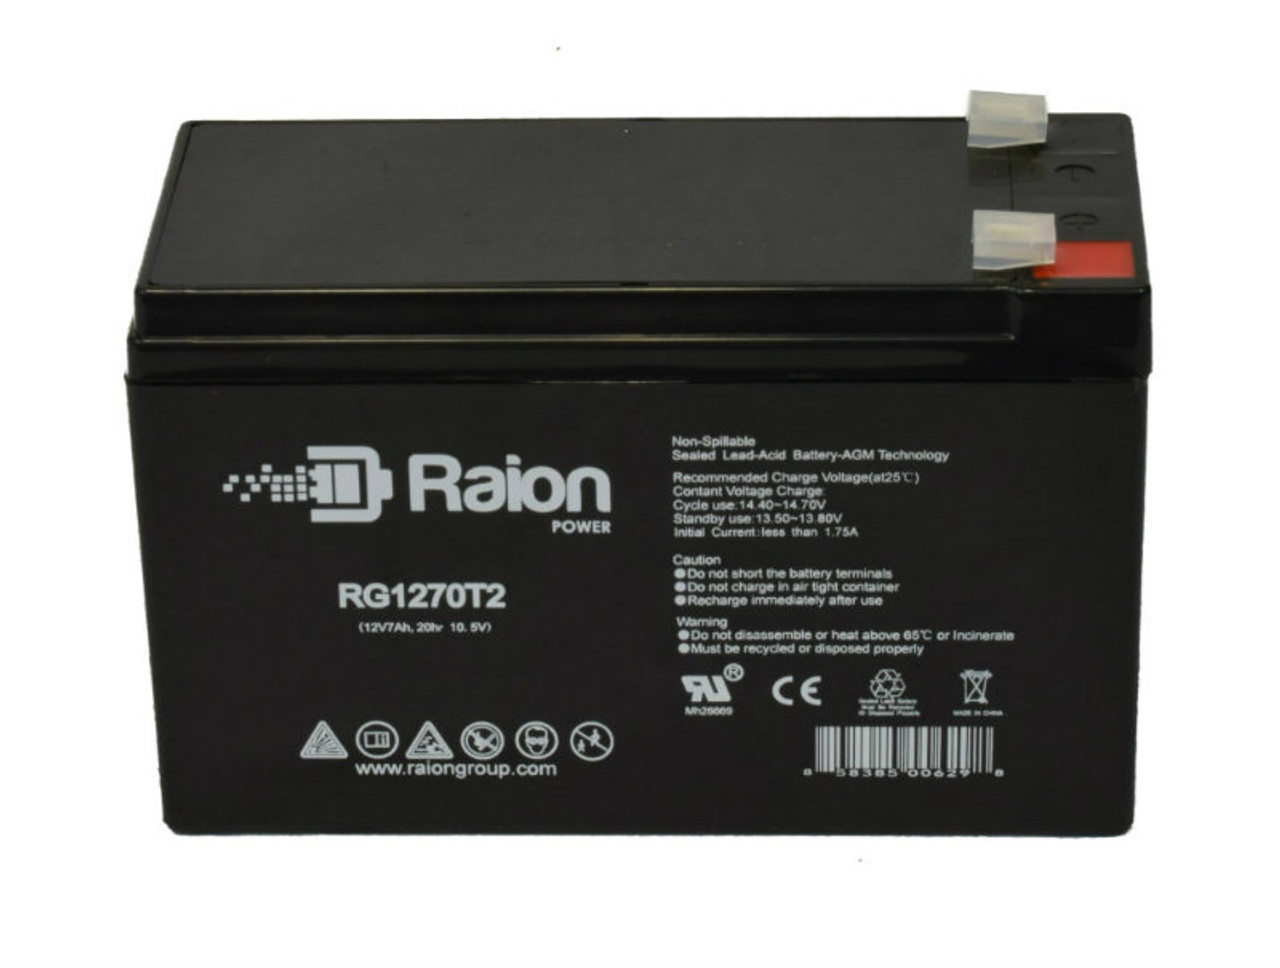 Raion Power 12V 7Ah SLA Battery With T1 Terminals For Long Way LW-6FM7.6